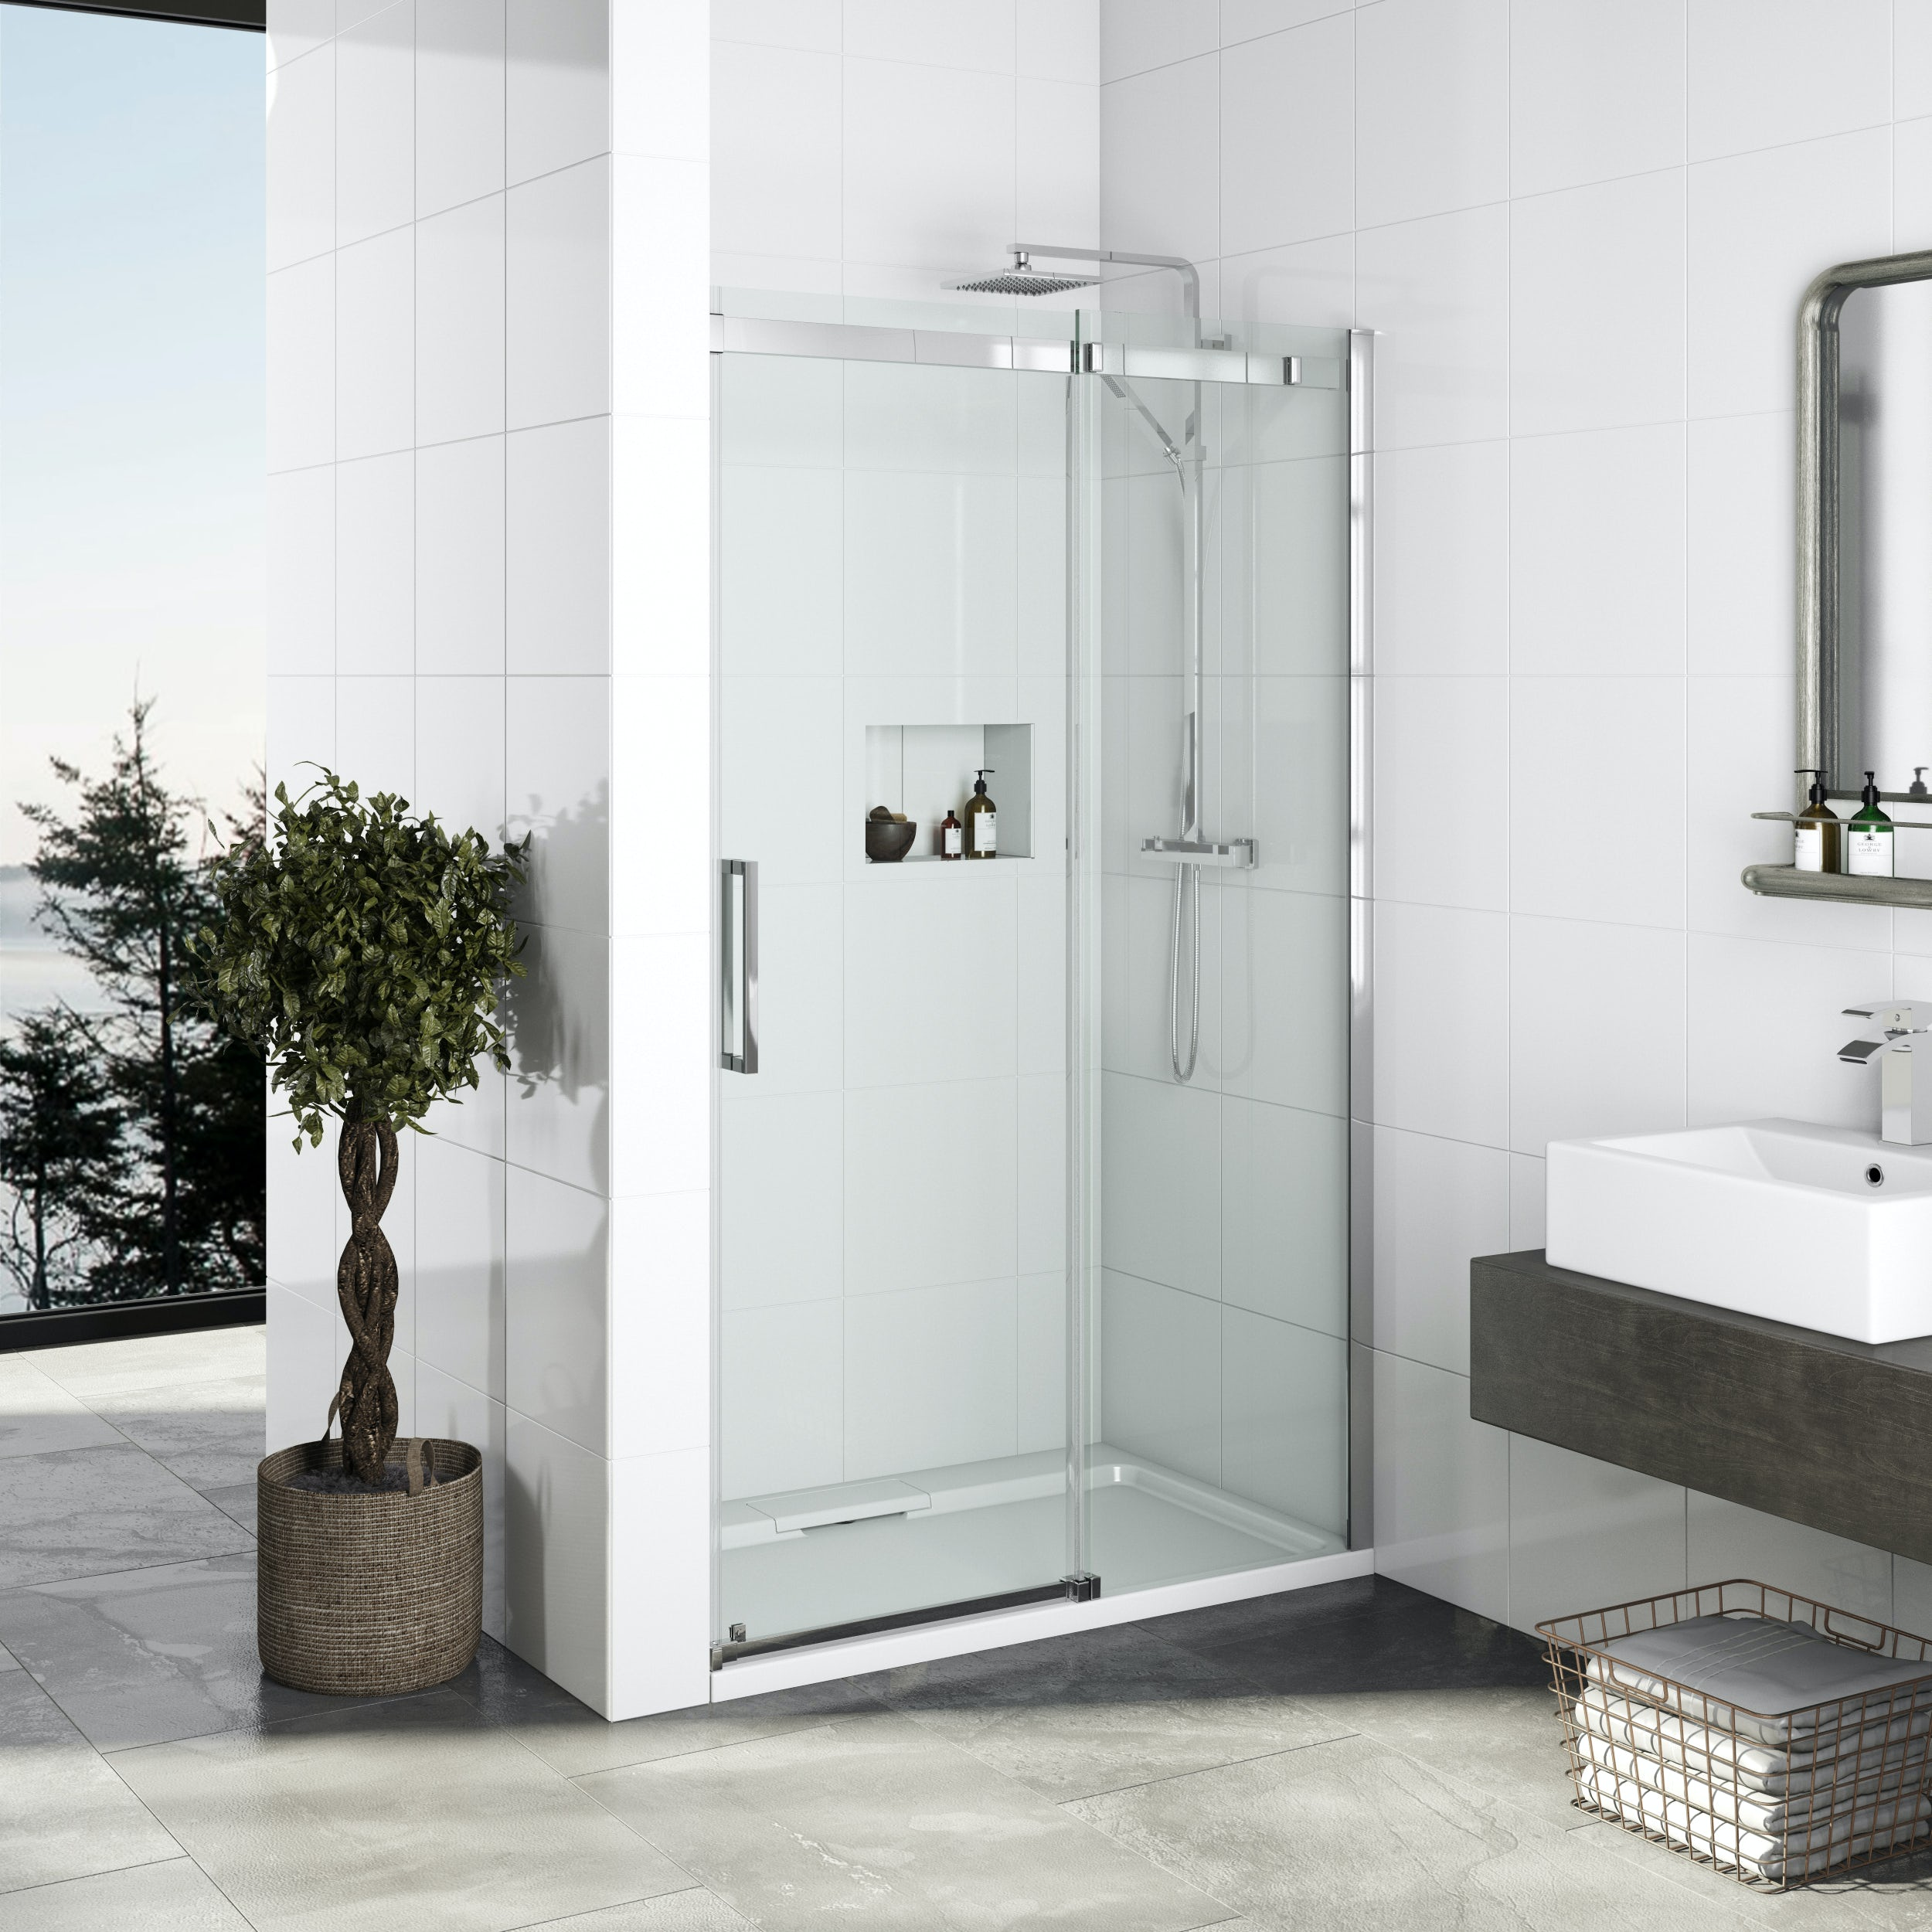 Mode Elite 10mm frameless sliding door 1200mm